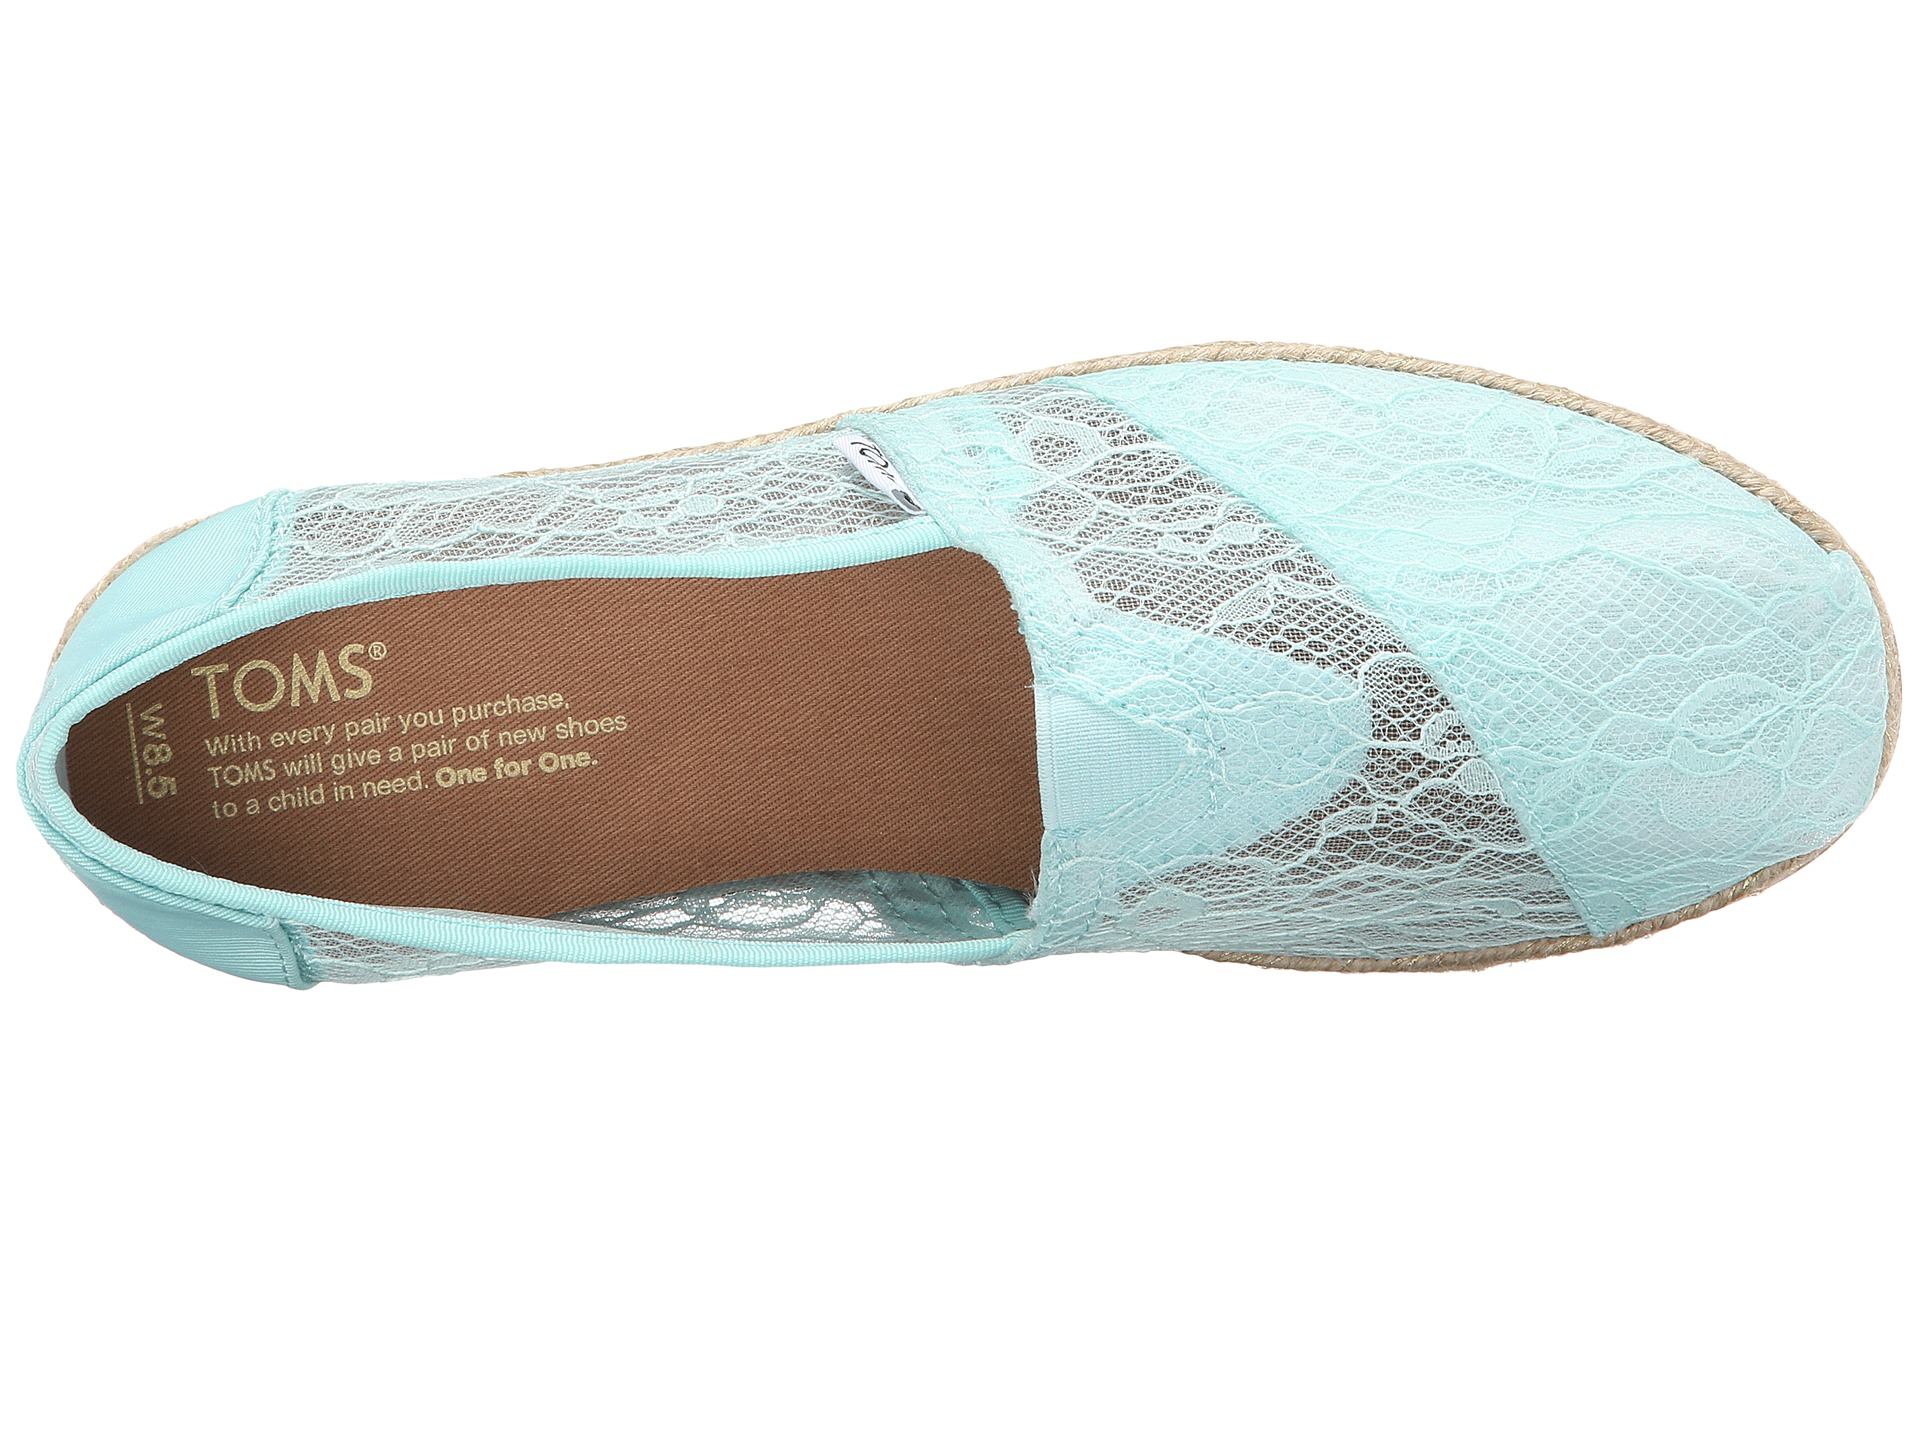 toms wedding classic mint lace toms wedding shoes Gallery